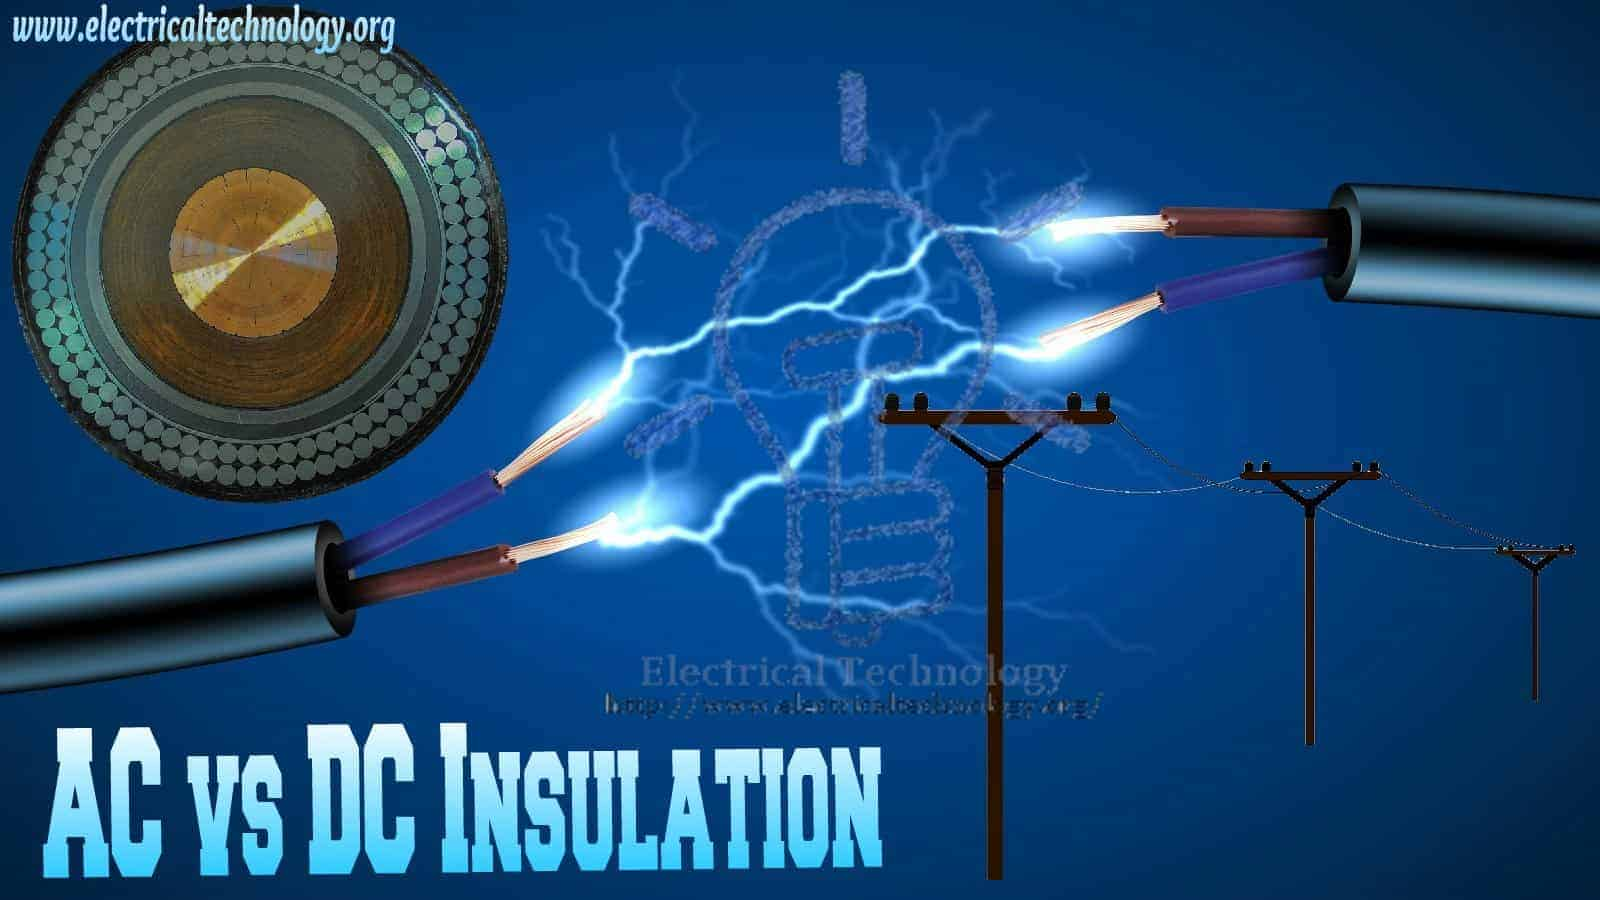 Why AC needs more insulation than DC for the Same Working Voltage Level?